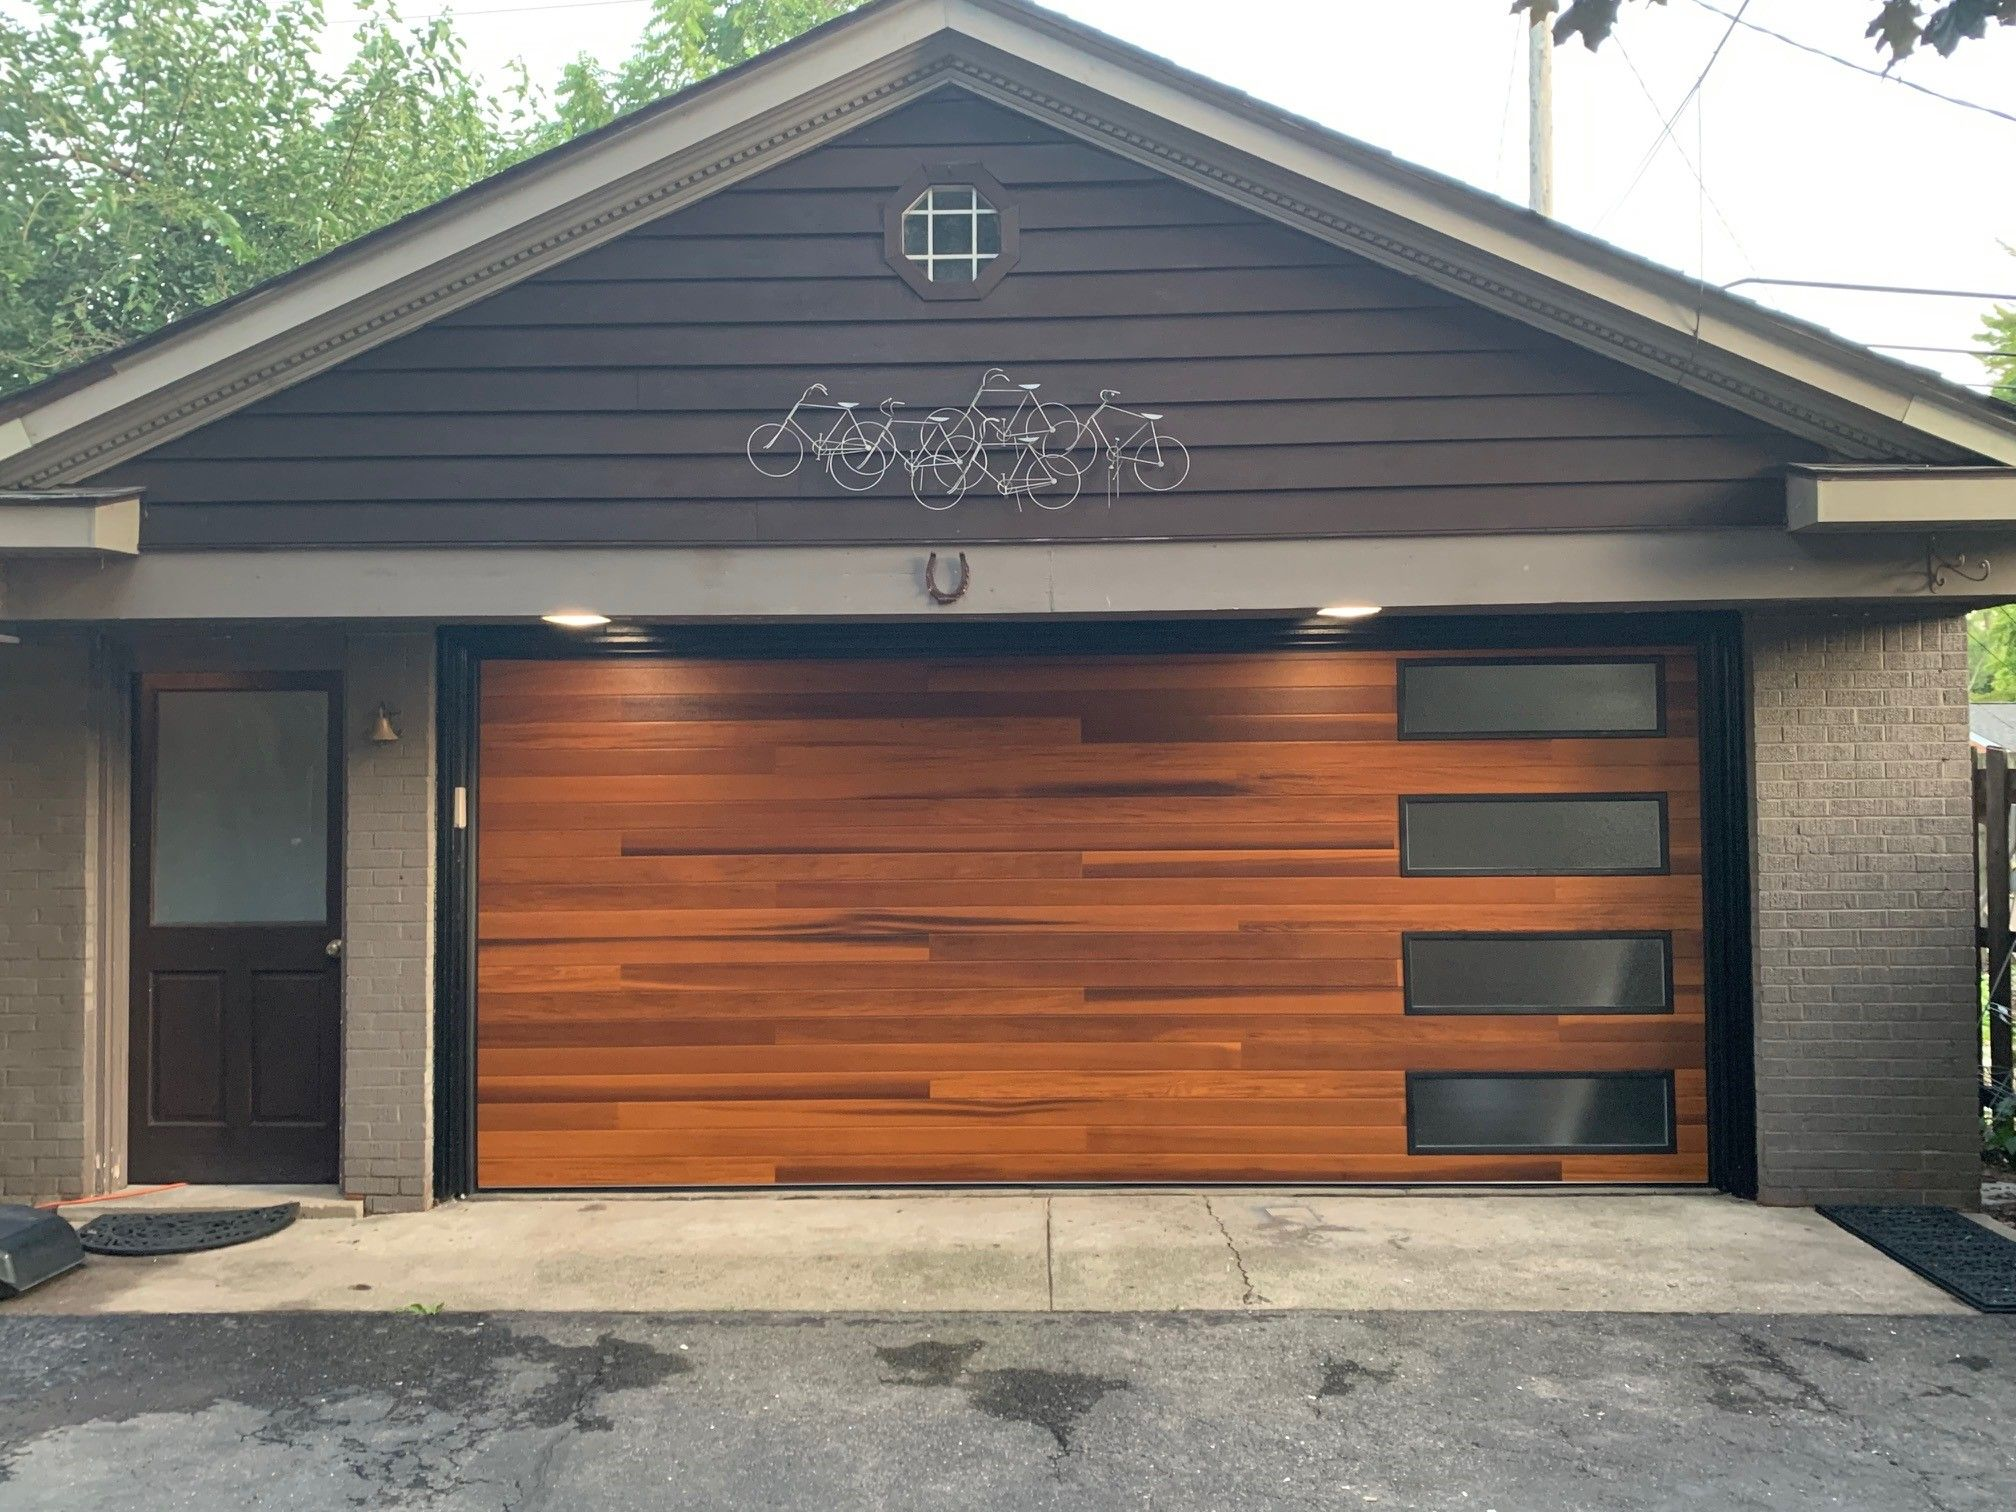 Planks Garage Door In Cedar Accents Woodtones By C H I Overhead Doors Garage Doors Garage Door Styles Modern Garage Doors